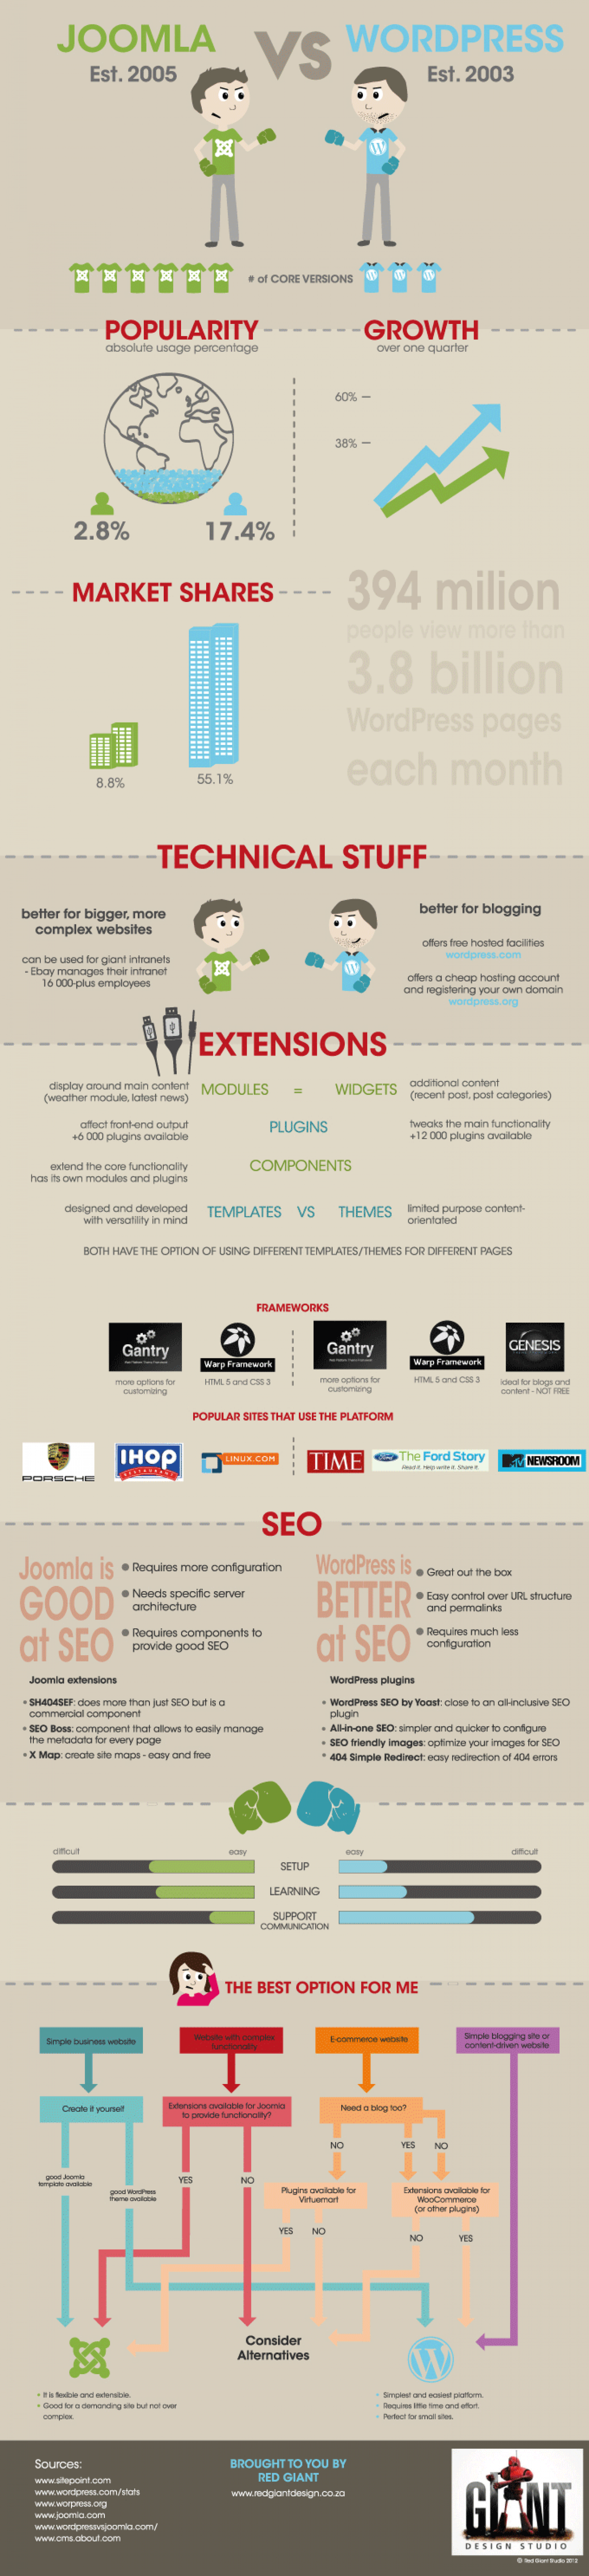 Difference Between Wordpress and Joomla Infographic